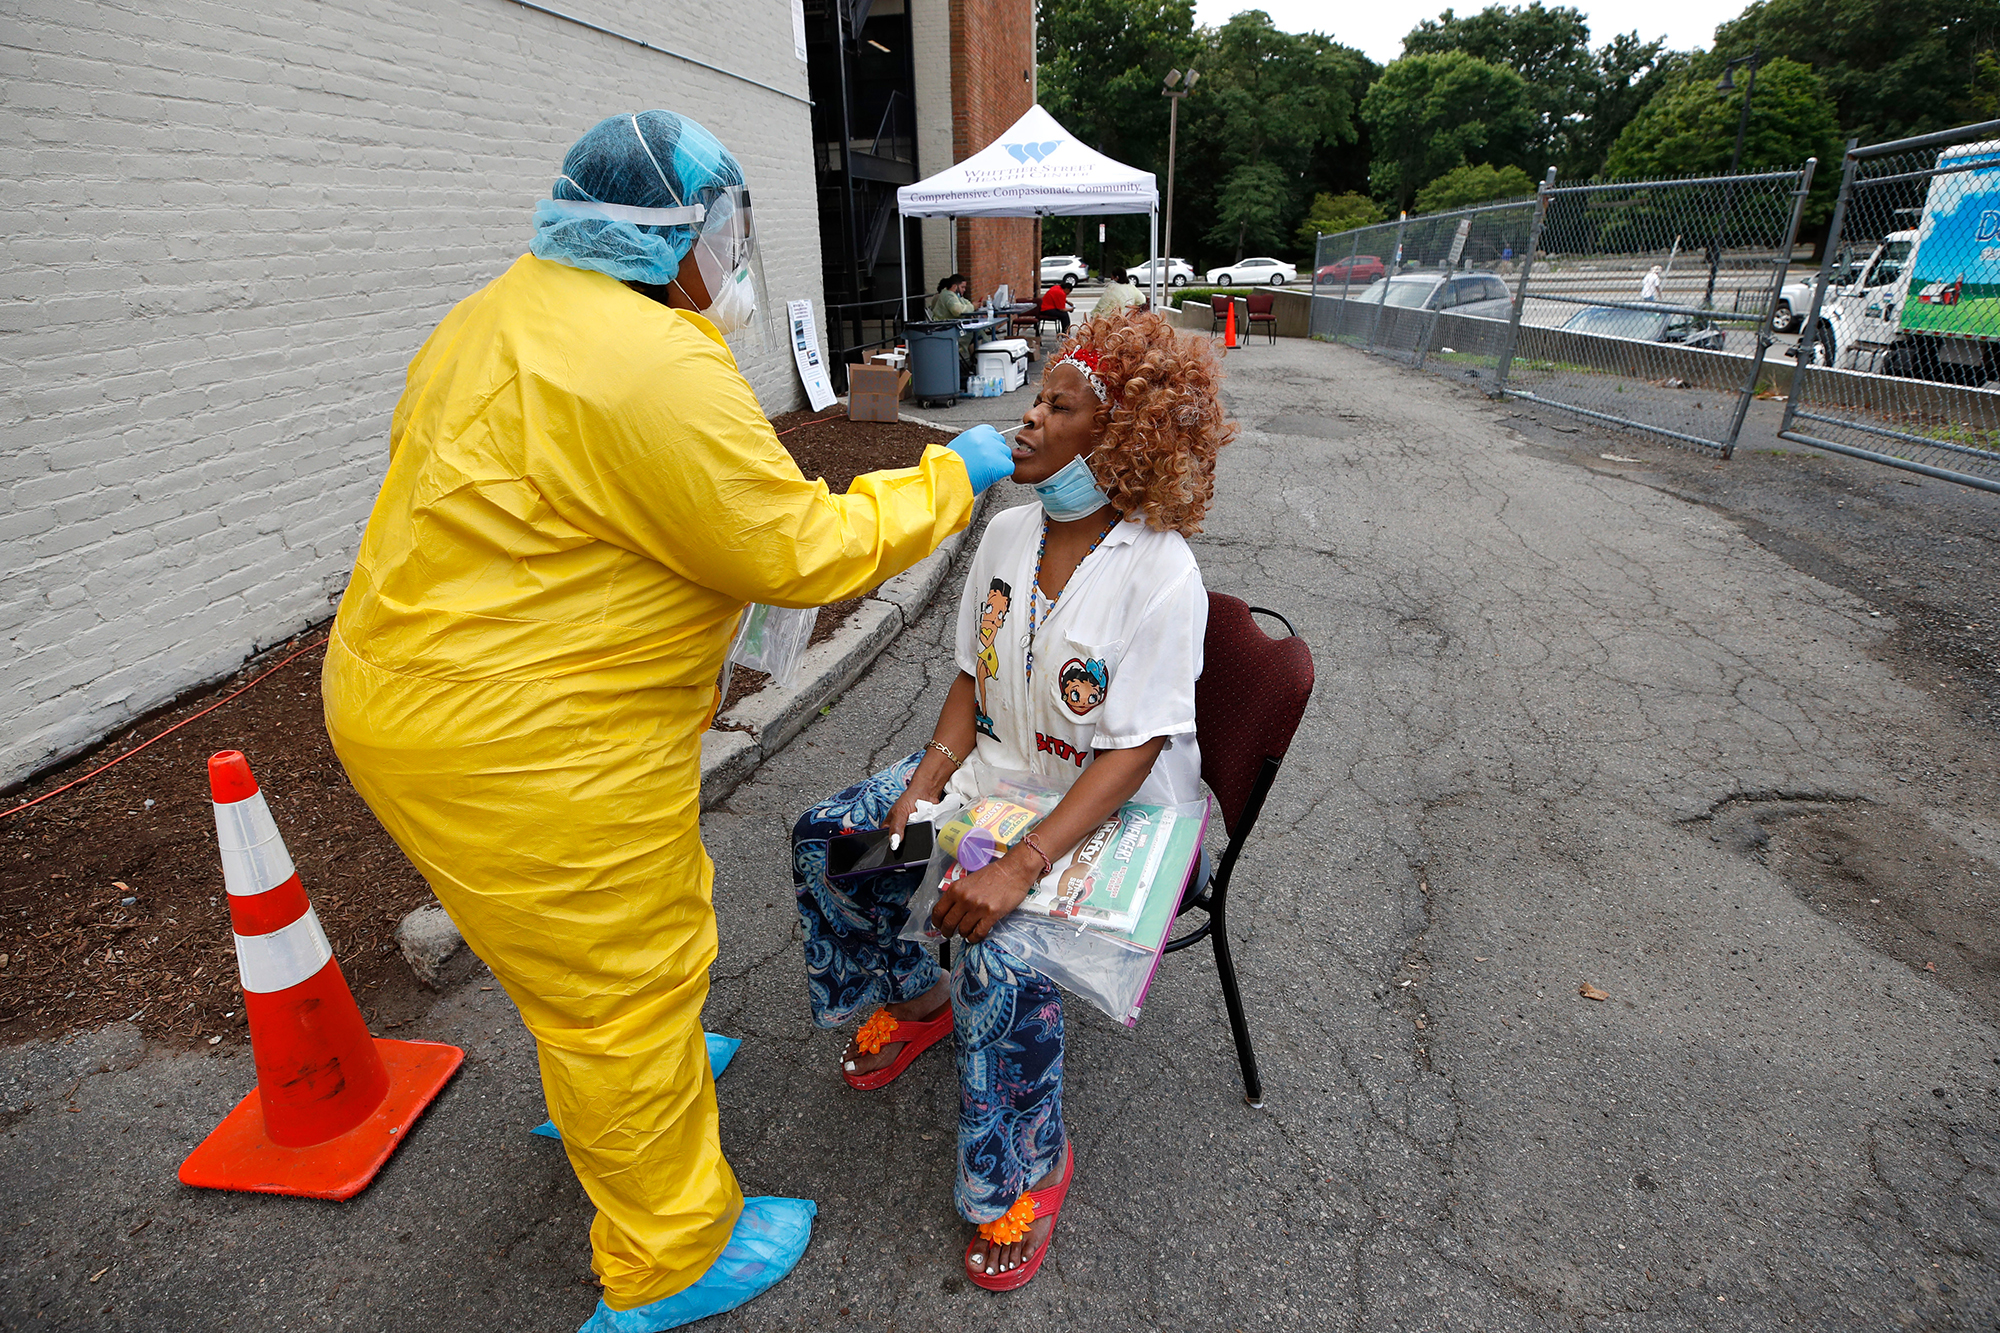 A COVID-19 test is administered at the Whittier Street Health Center's mobile test site on. Wednesday, July 15, 2020, in Boston, Mass.